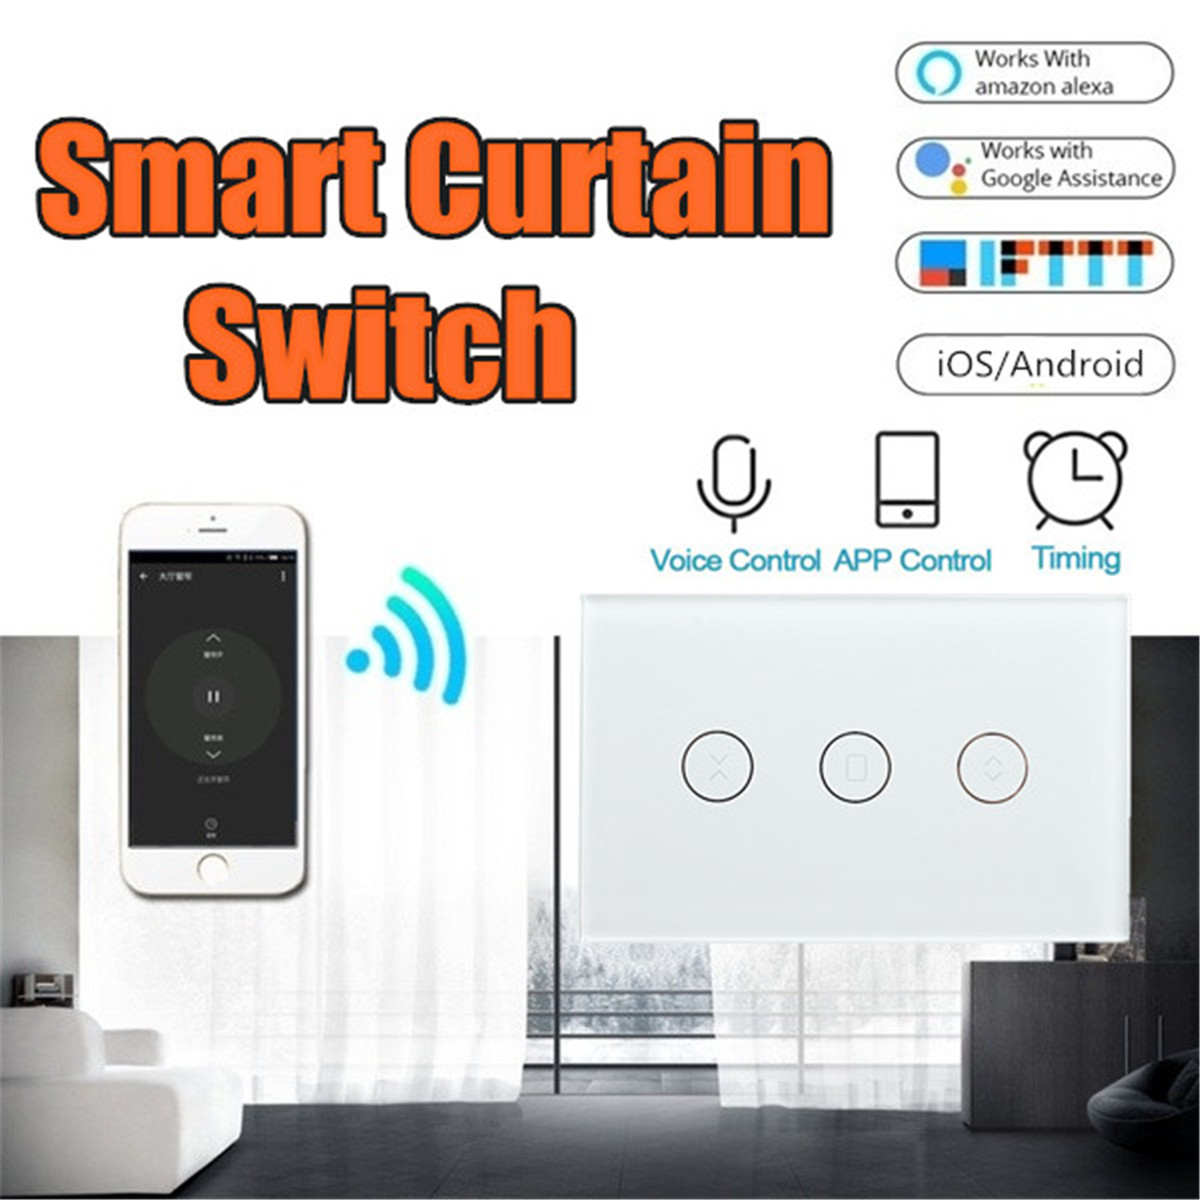 Tuya Smart Life EU WiFi Roller Shutter Curtain Switch For Electric Motorized Blinds With Remote Control Google Home Aelxa